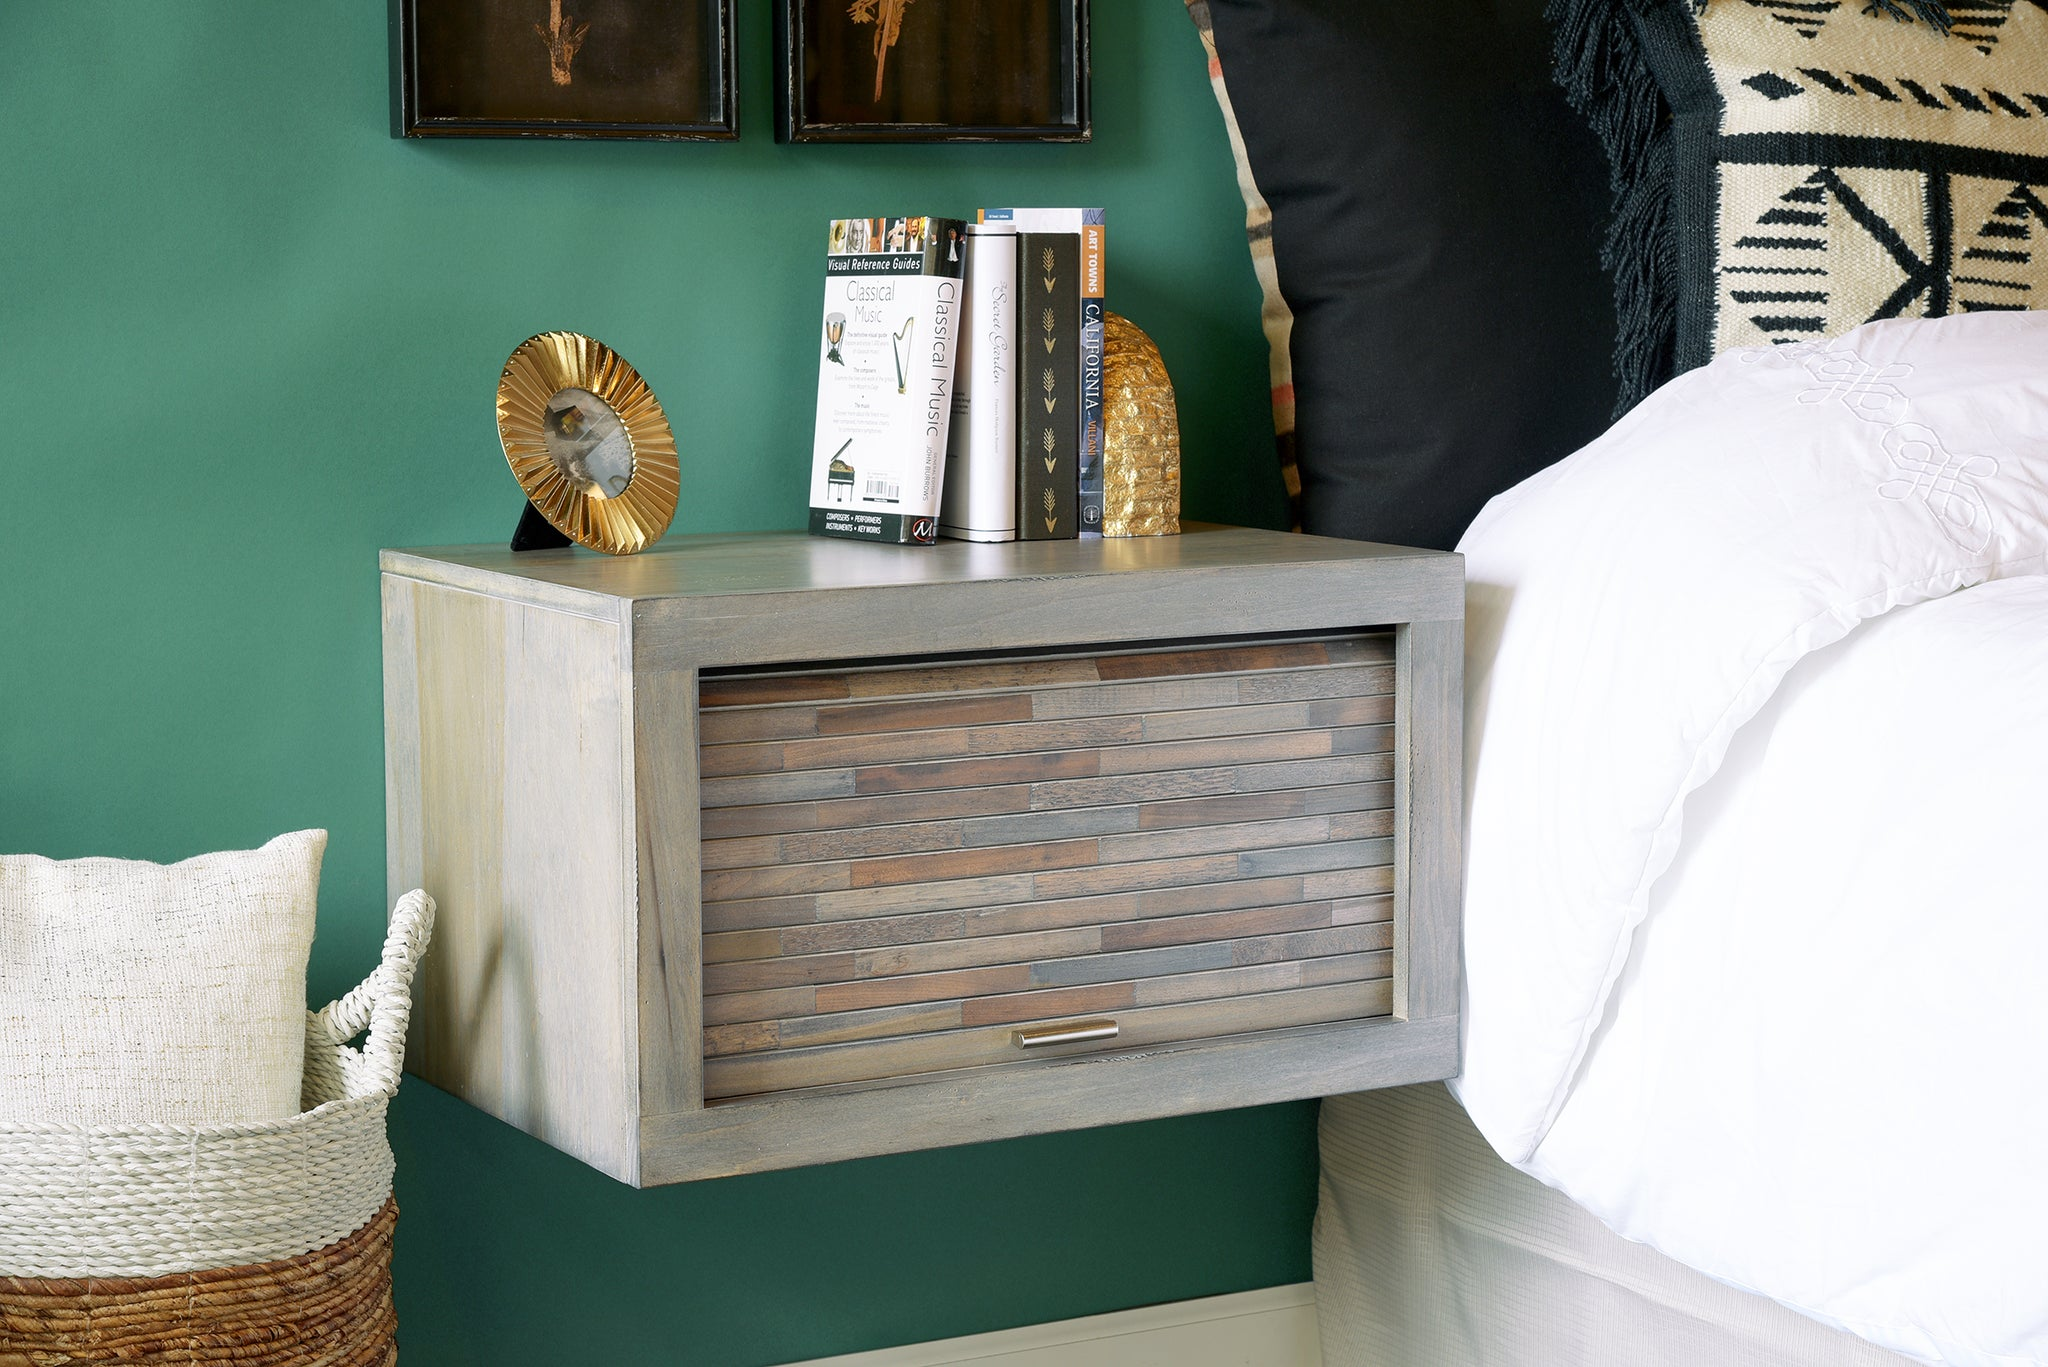 Modern Gray Floating Nightstand Wall Mount Night Stand - ECO GEO Lakewood - OB 30% OFF!